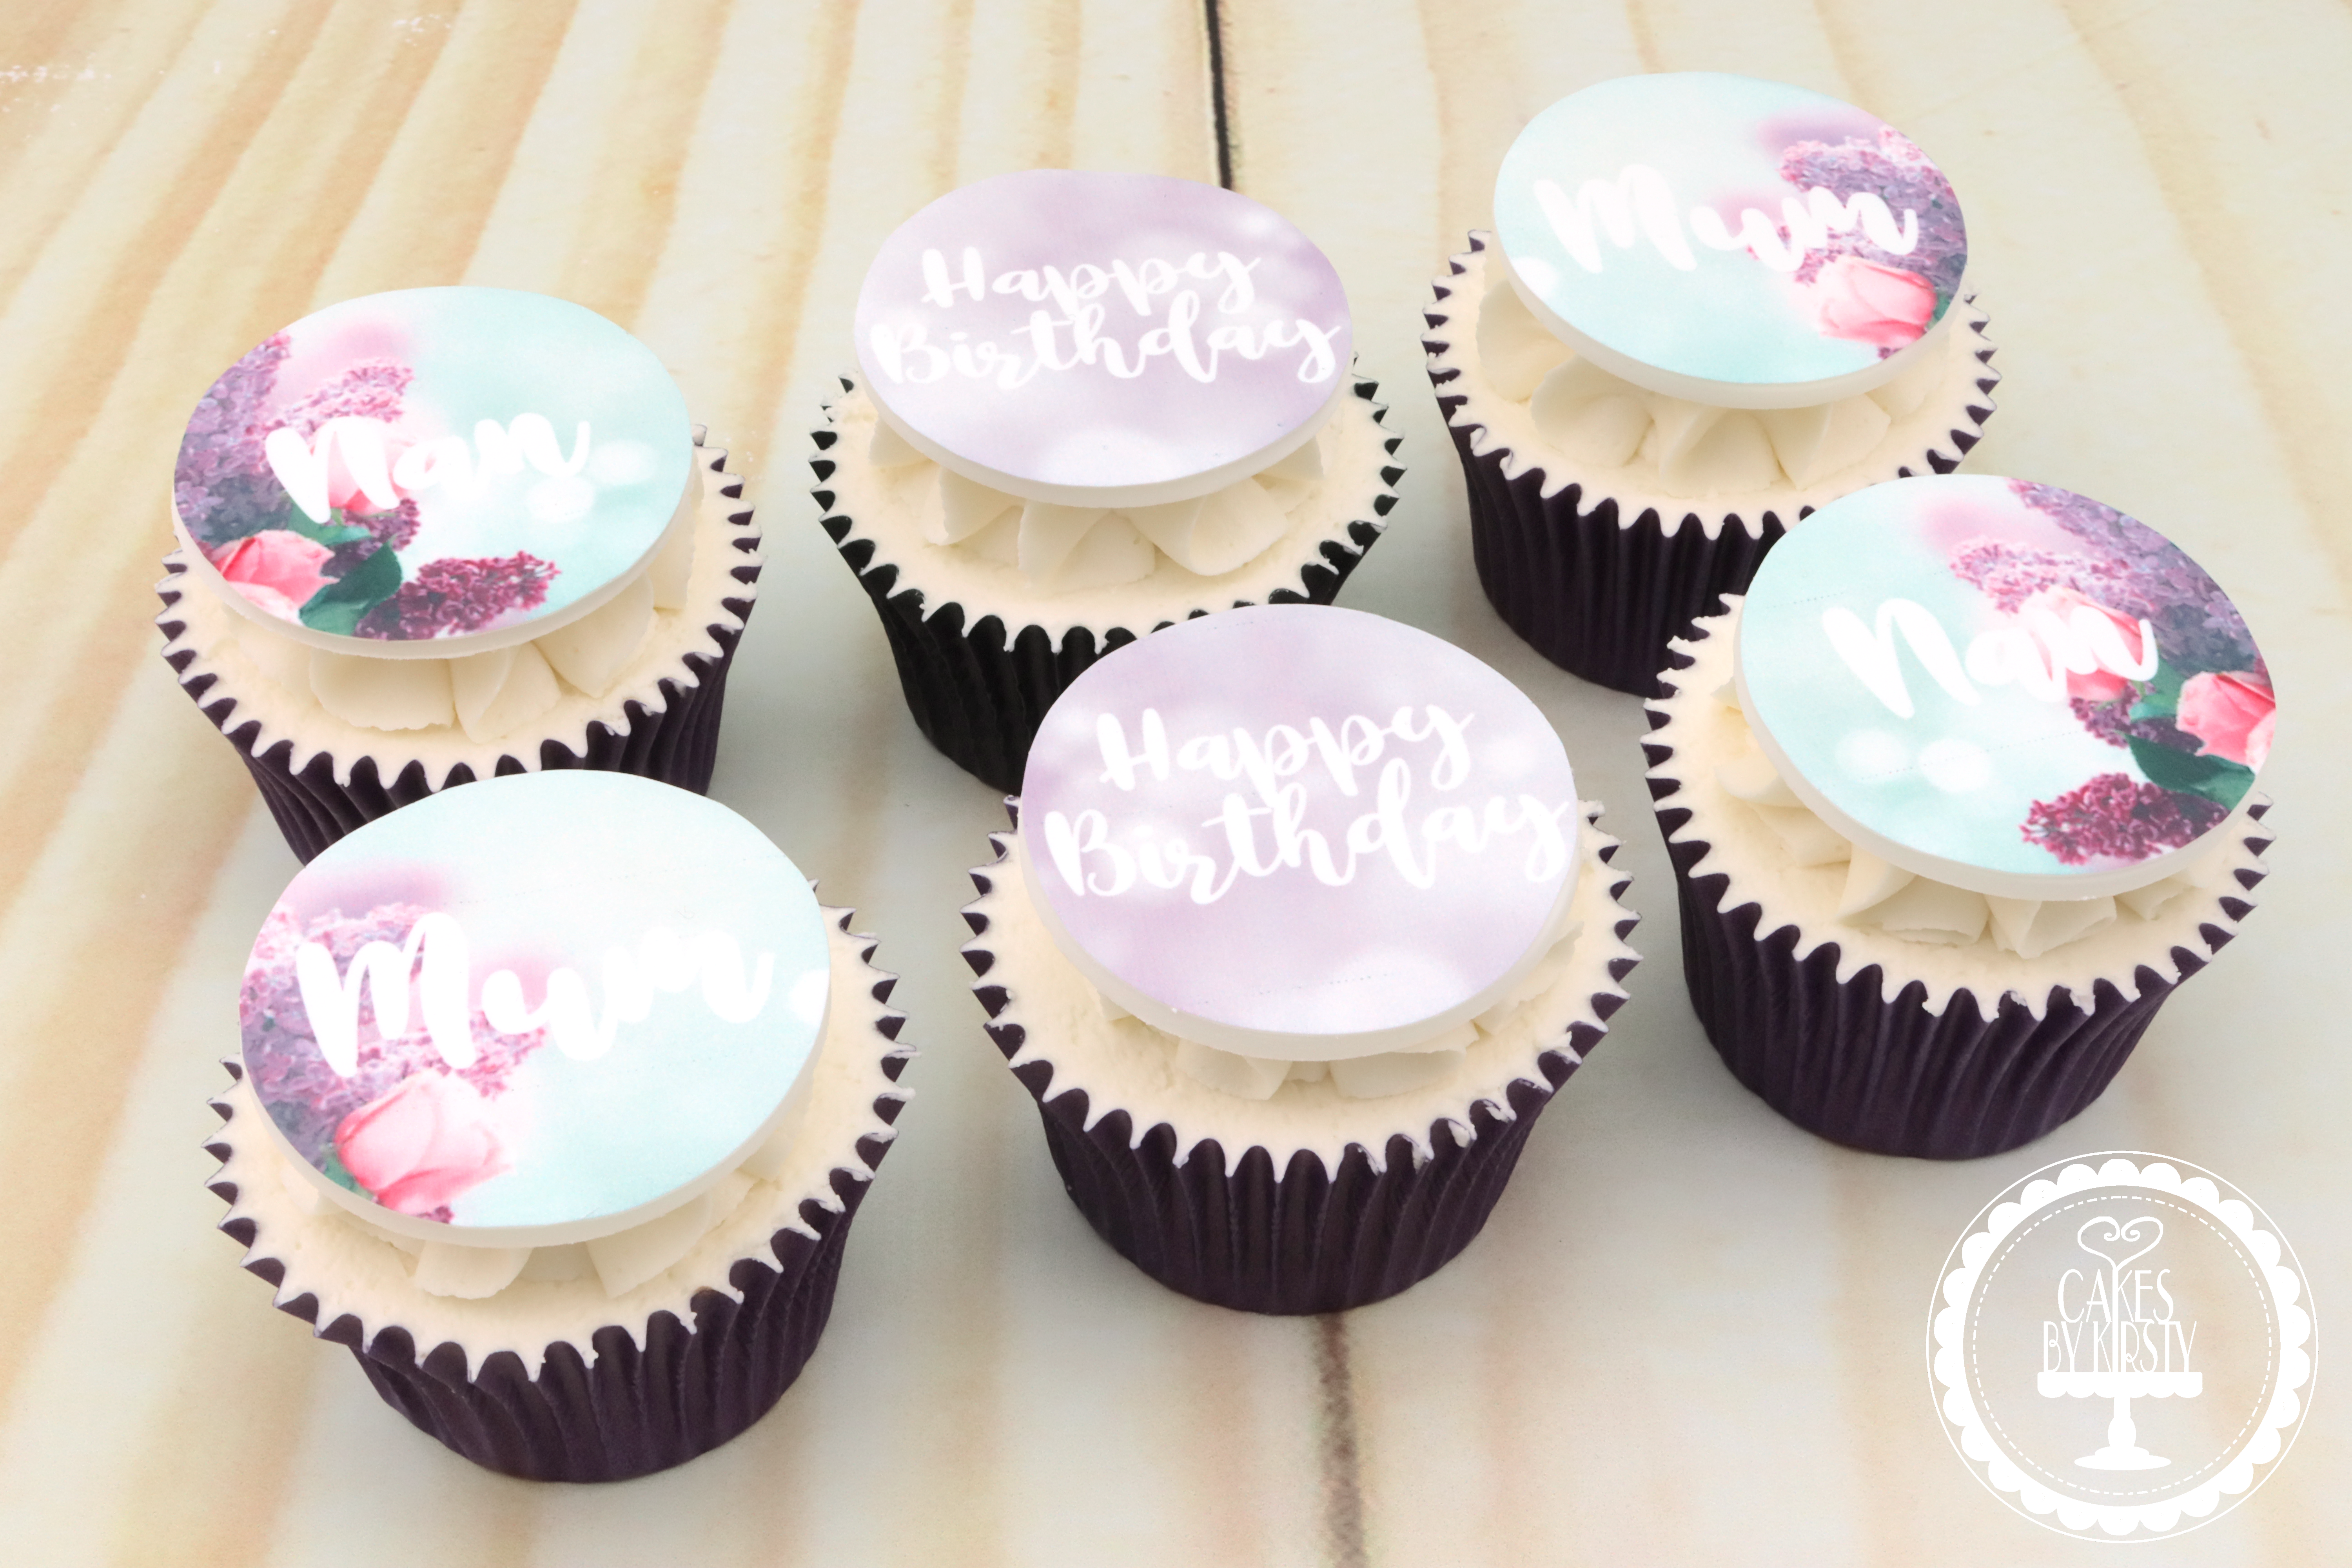 20190817 - Floral Birthday Cupcakes